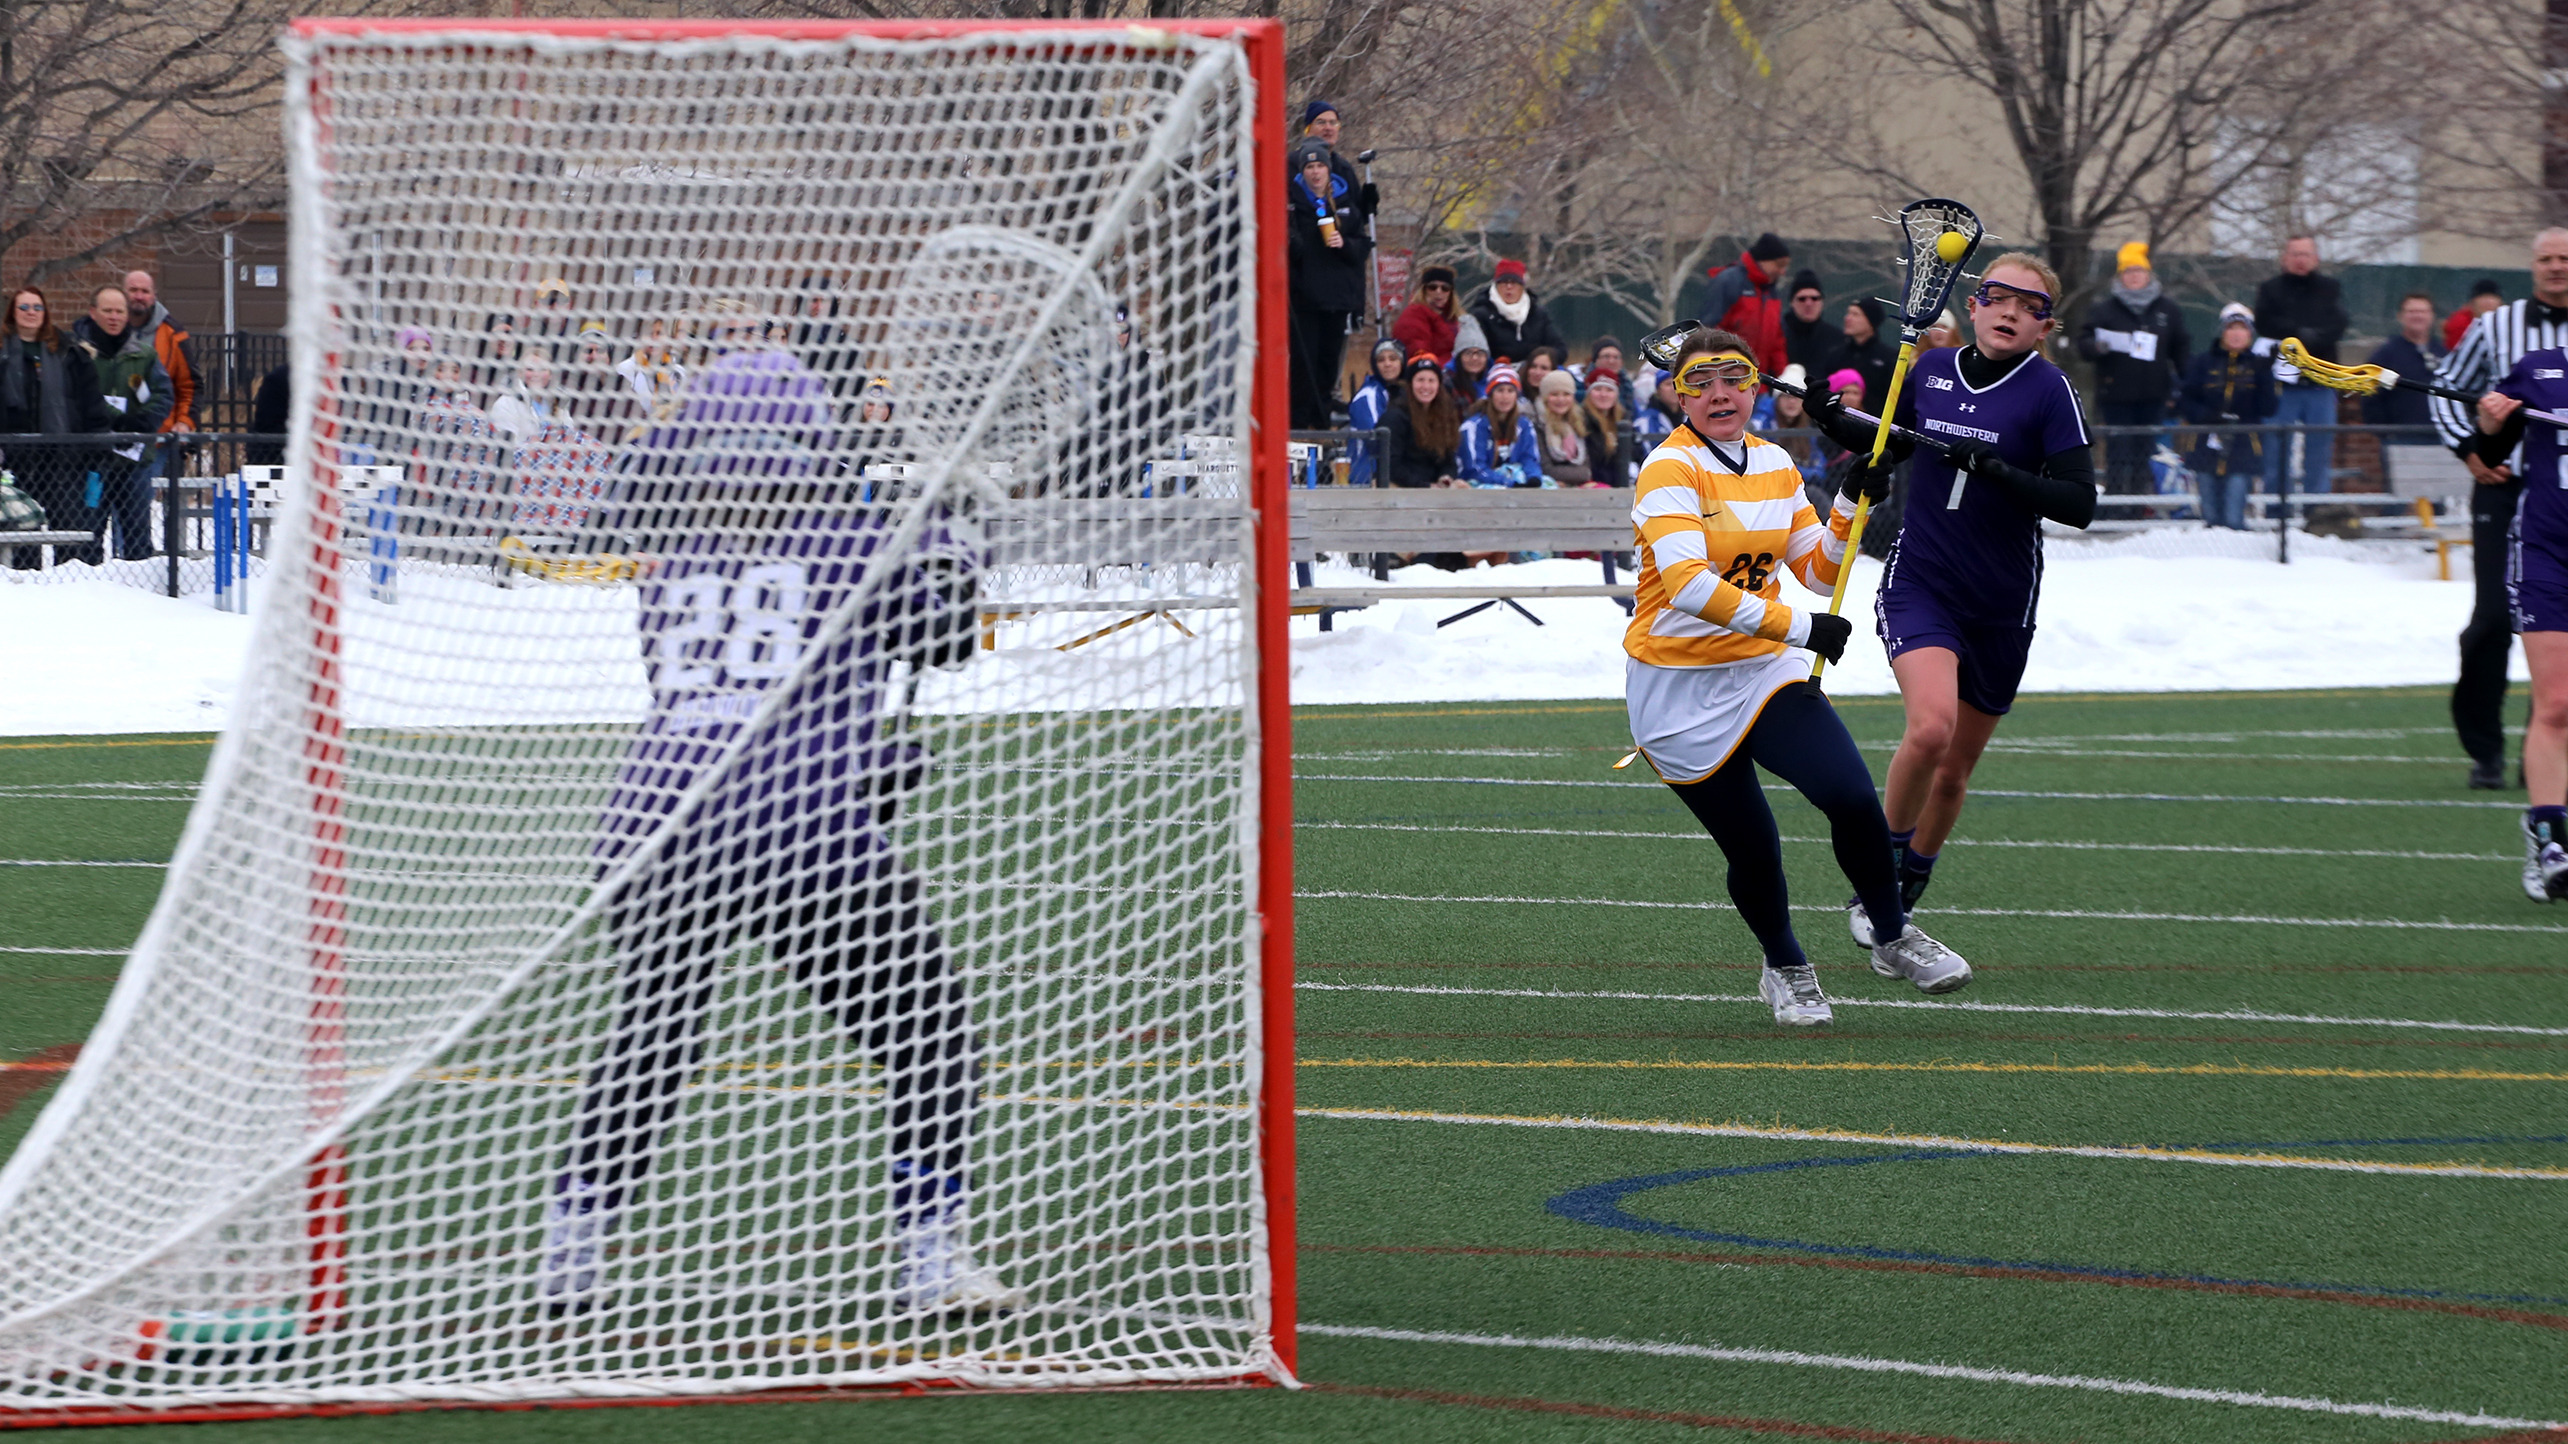 Riley Hill scored her first career hat trick in the 15-4 win over St. Mary's (Calif.).